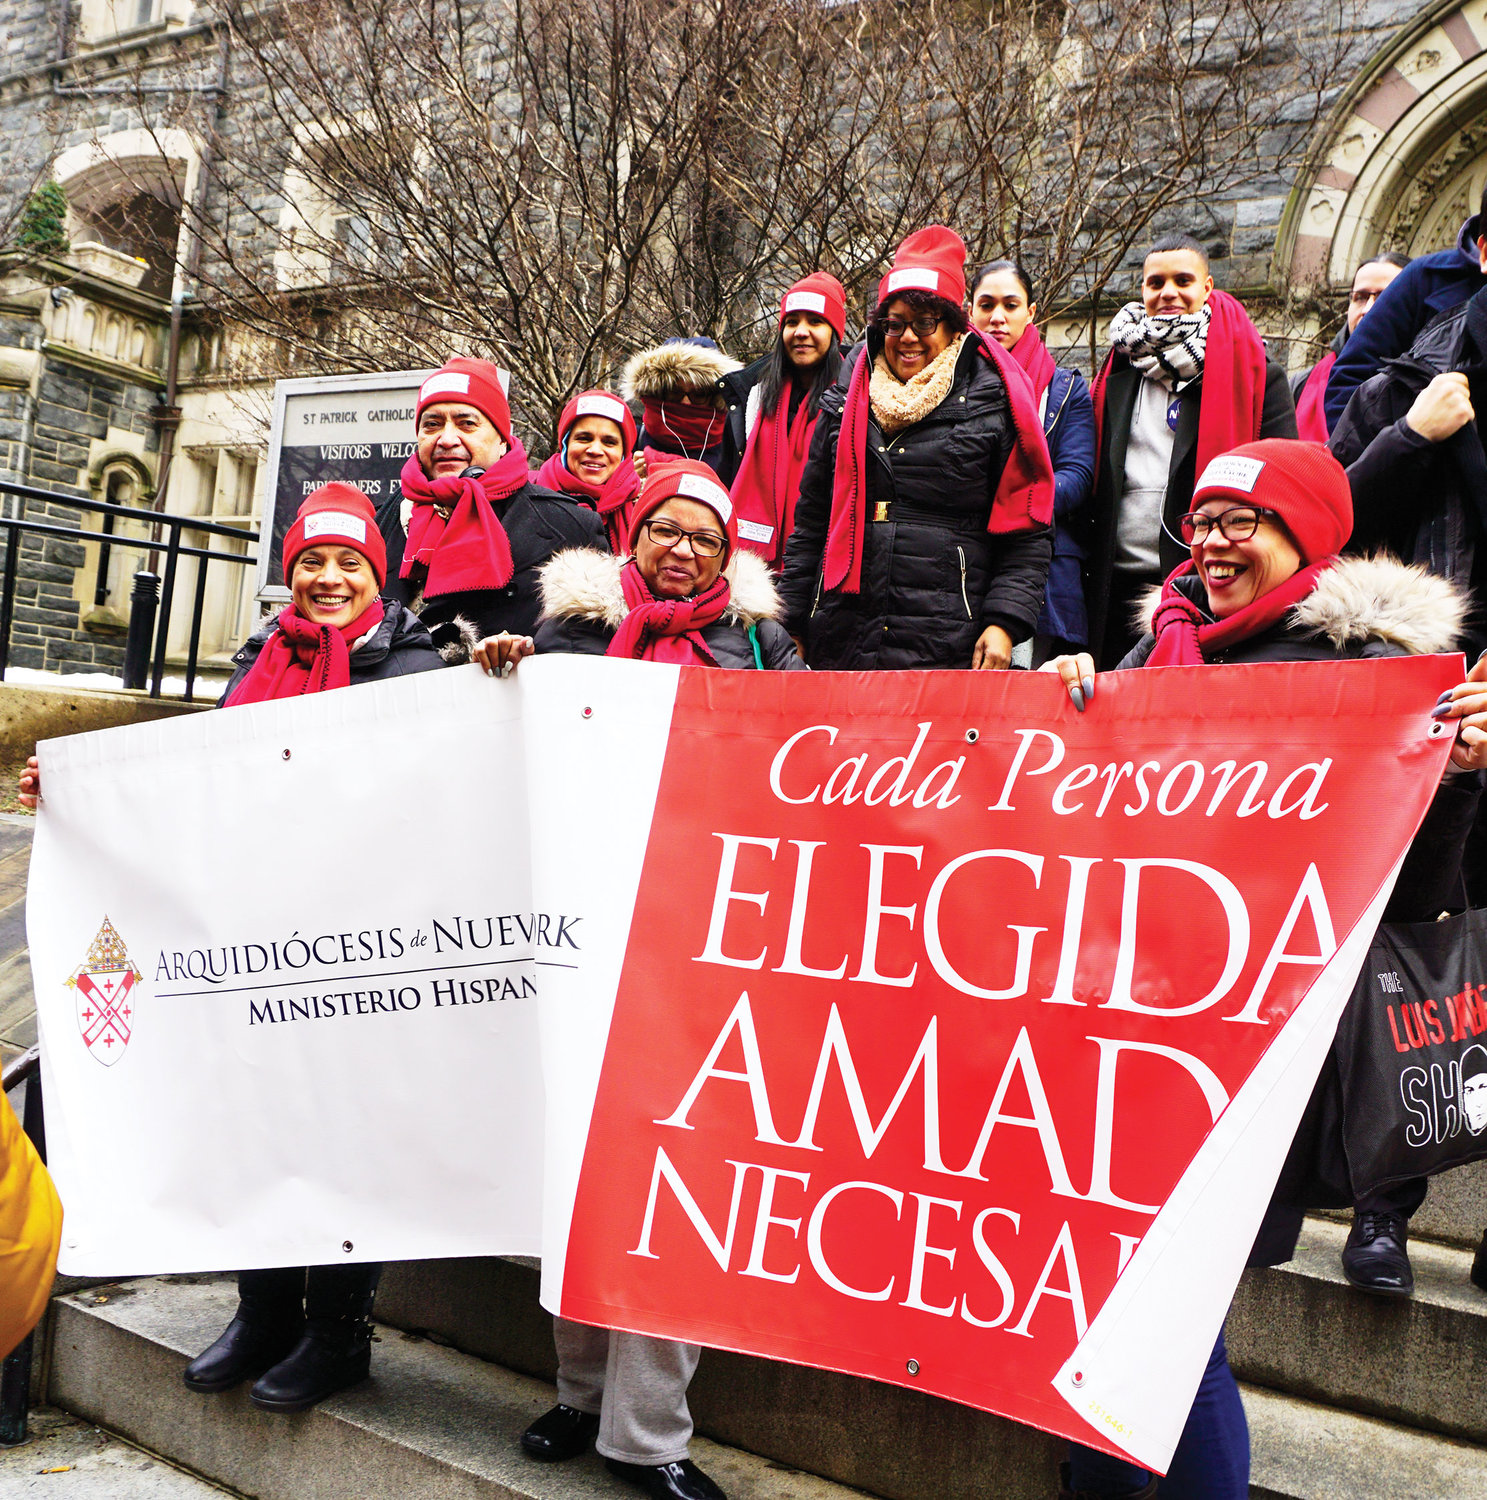 Members of the Hispanic Ministry office pilgrimage group, above, display a banner that reads Cada Persona: Elegida, Amada, Necesaria (Every Person: Chosen, Loved, Necessary).